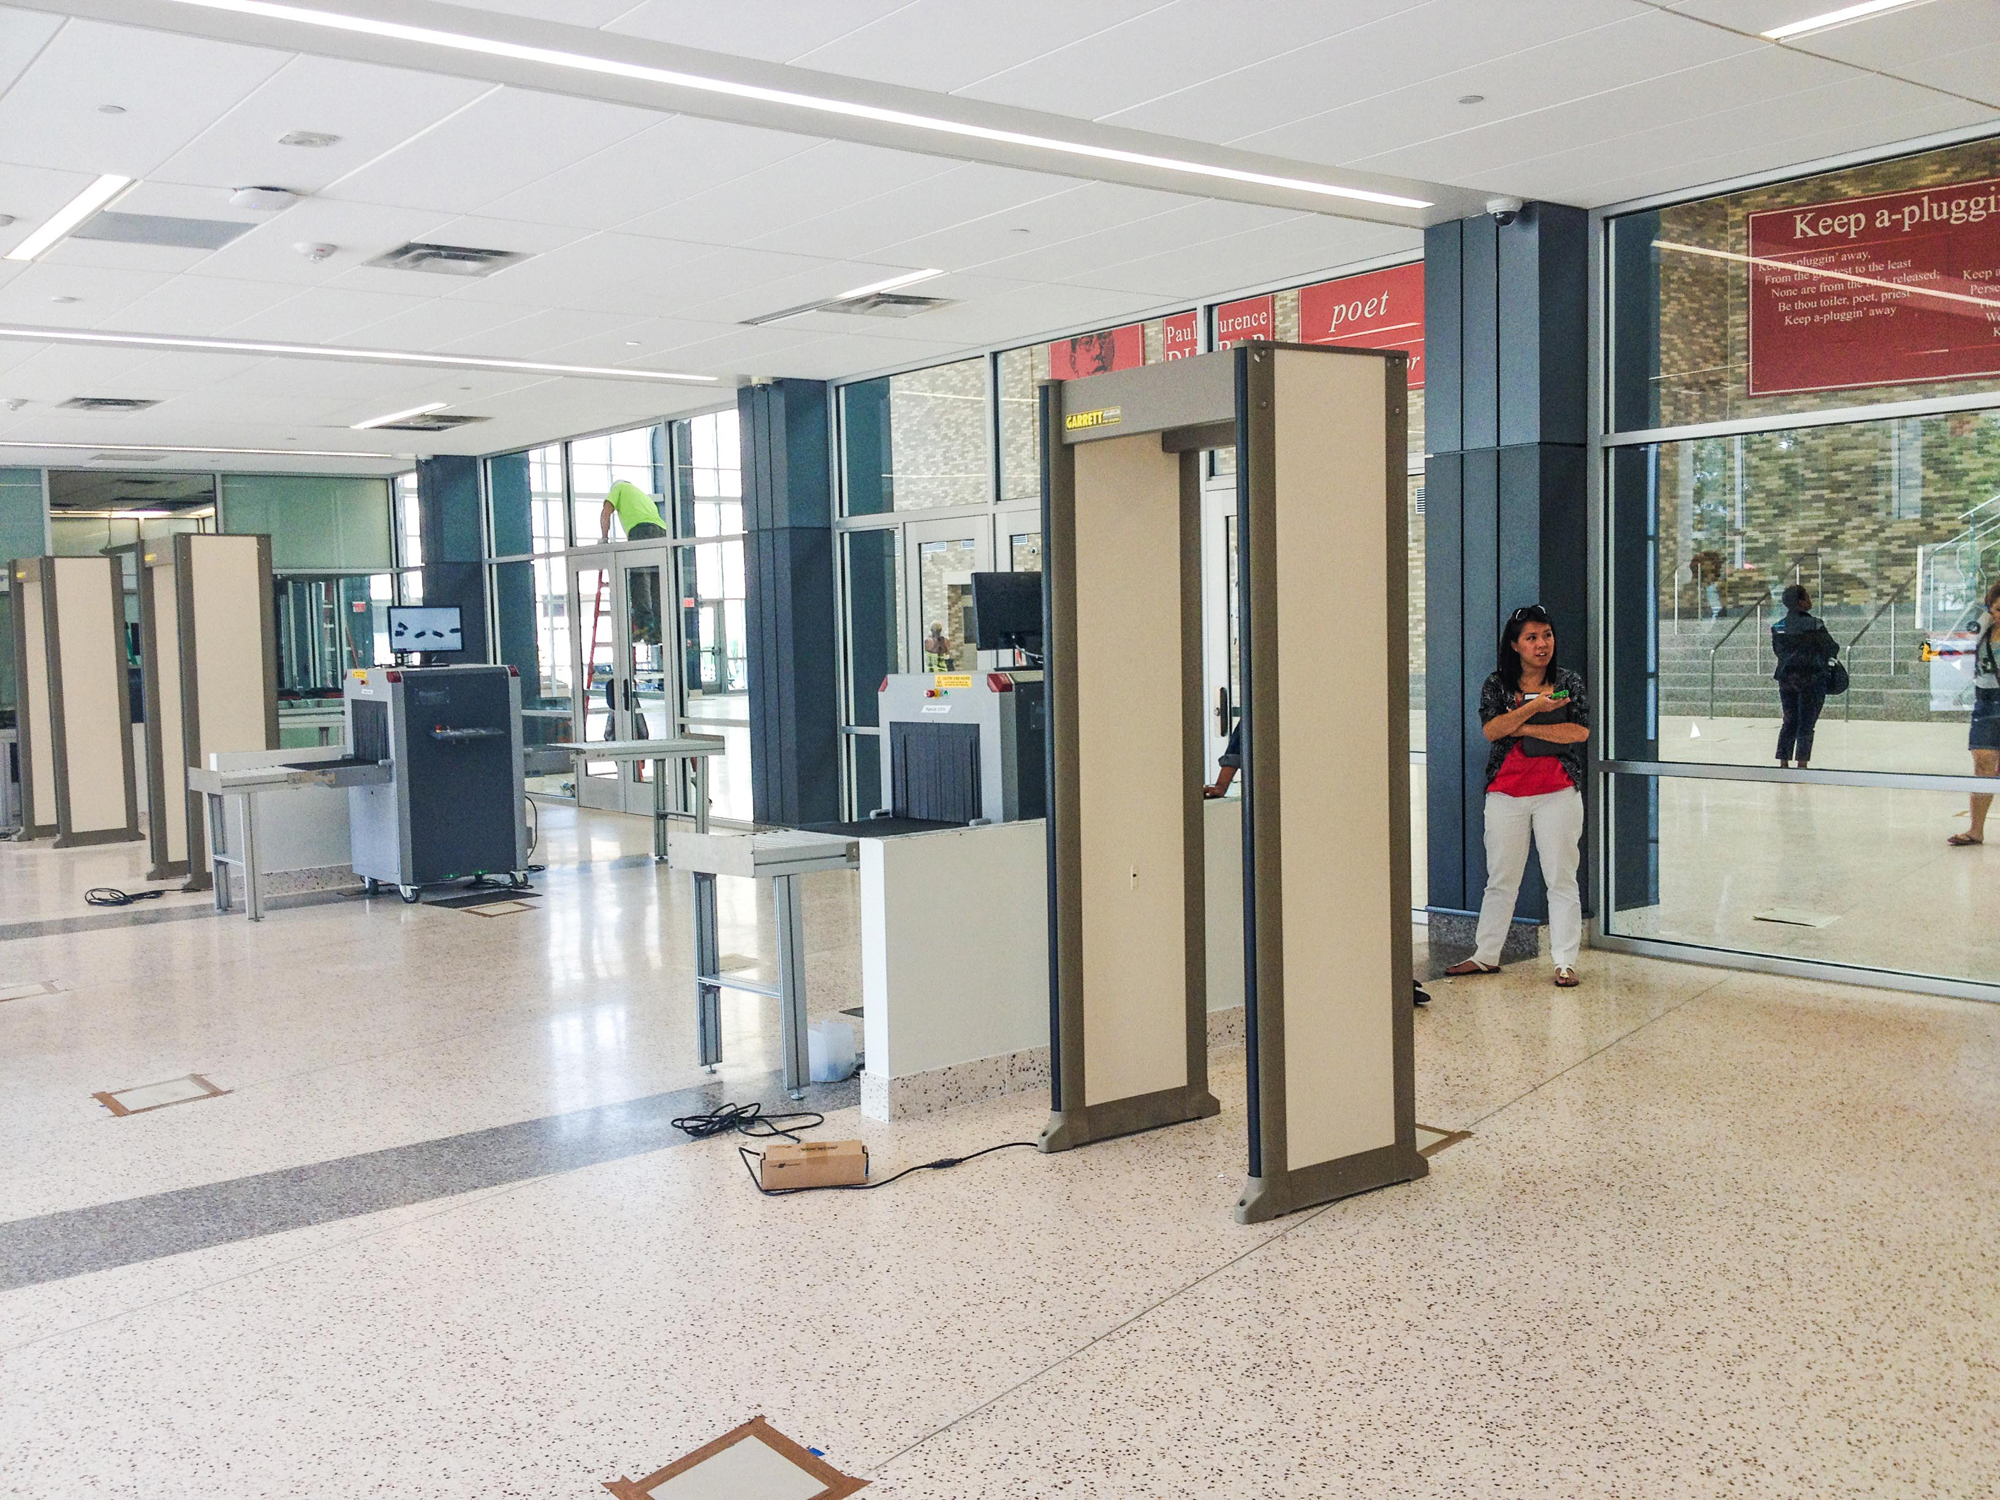 Security metal detector school - Dunbar High School Vestibule This Area Contains Metal Detectors X Ray Machines And Video Surveillance 2013 Photo By Author